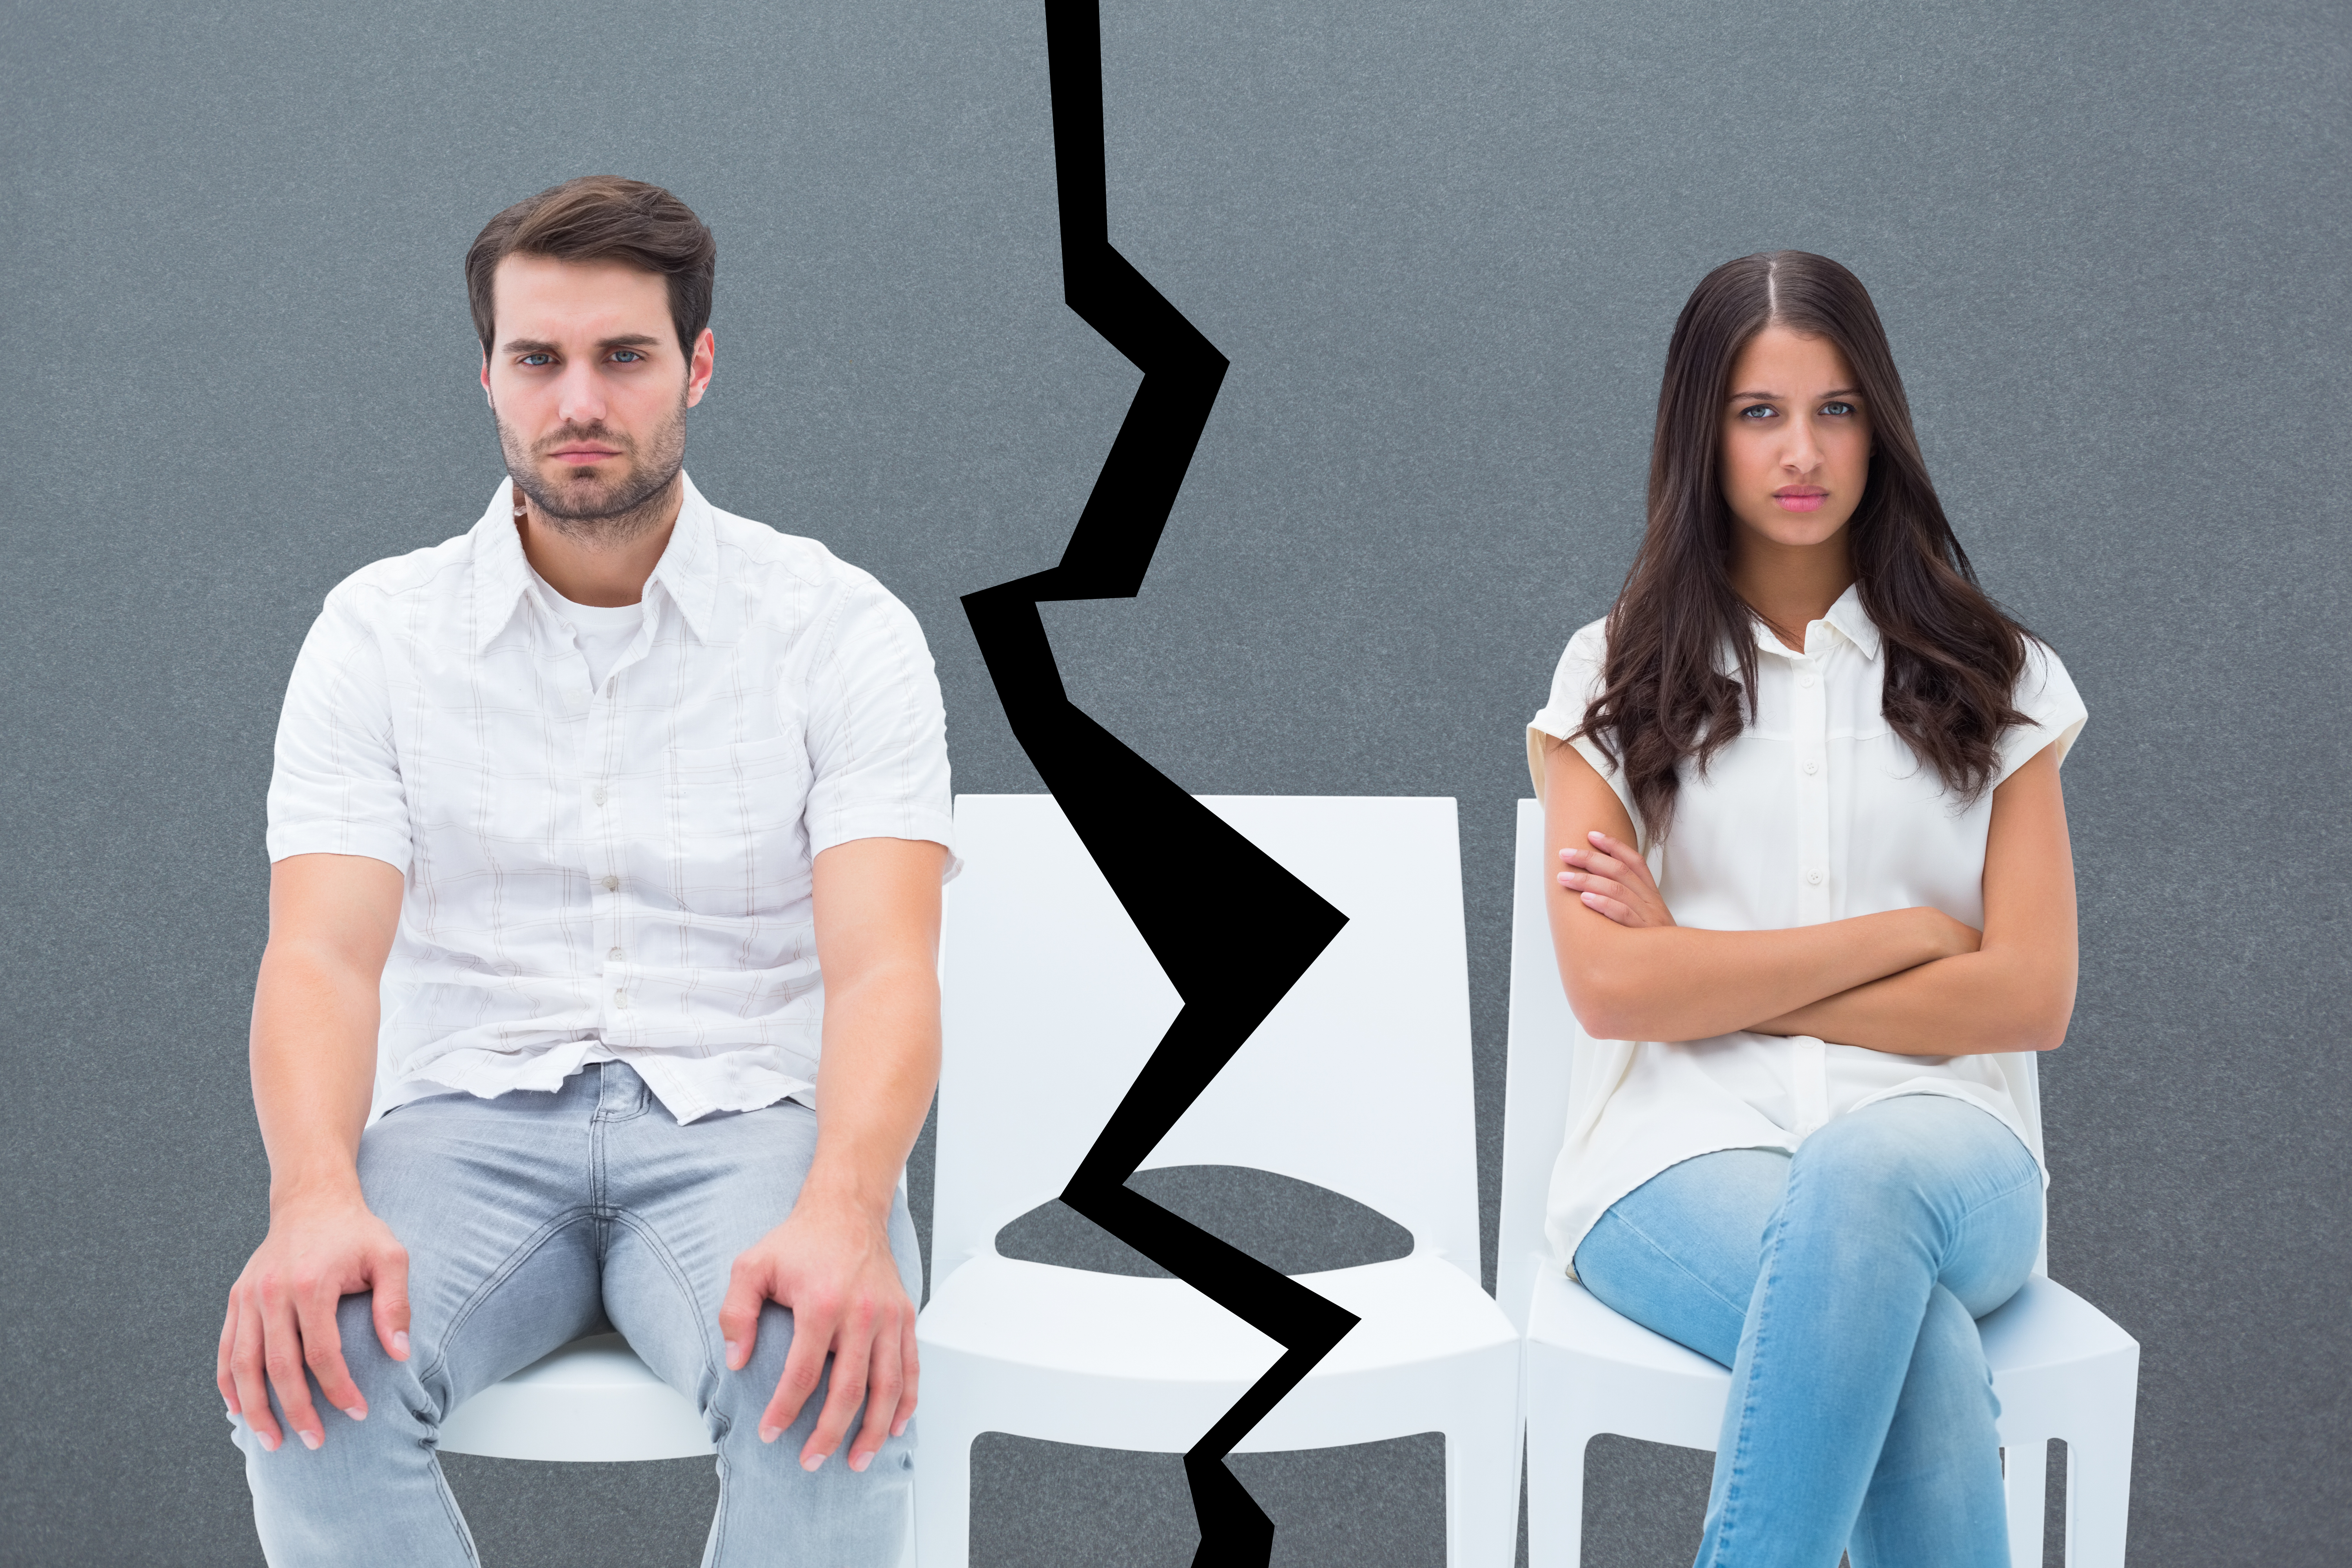 5 Brutal But Honest Facts Why Your Boyfriend Talks To Other